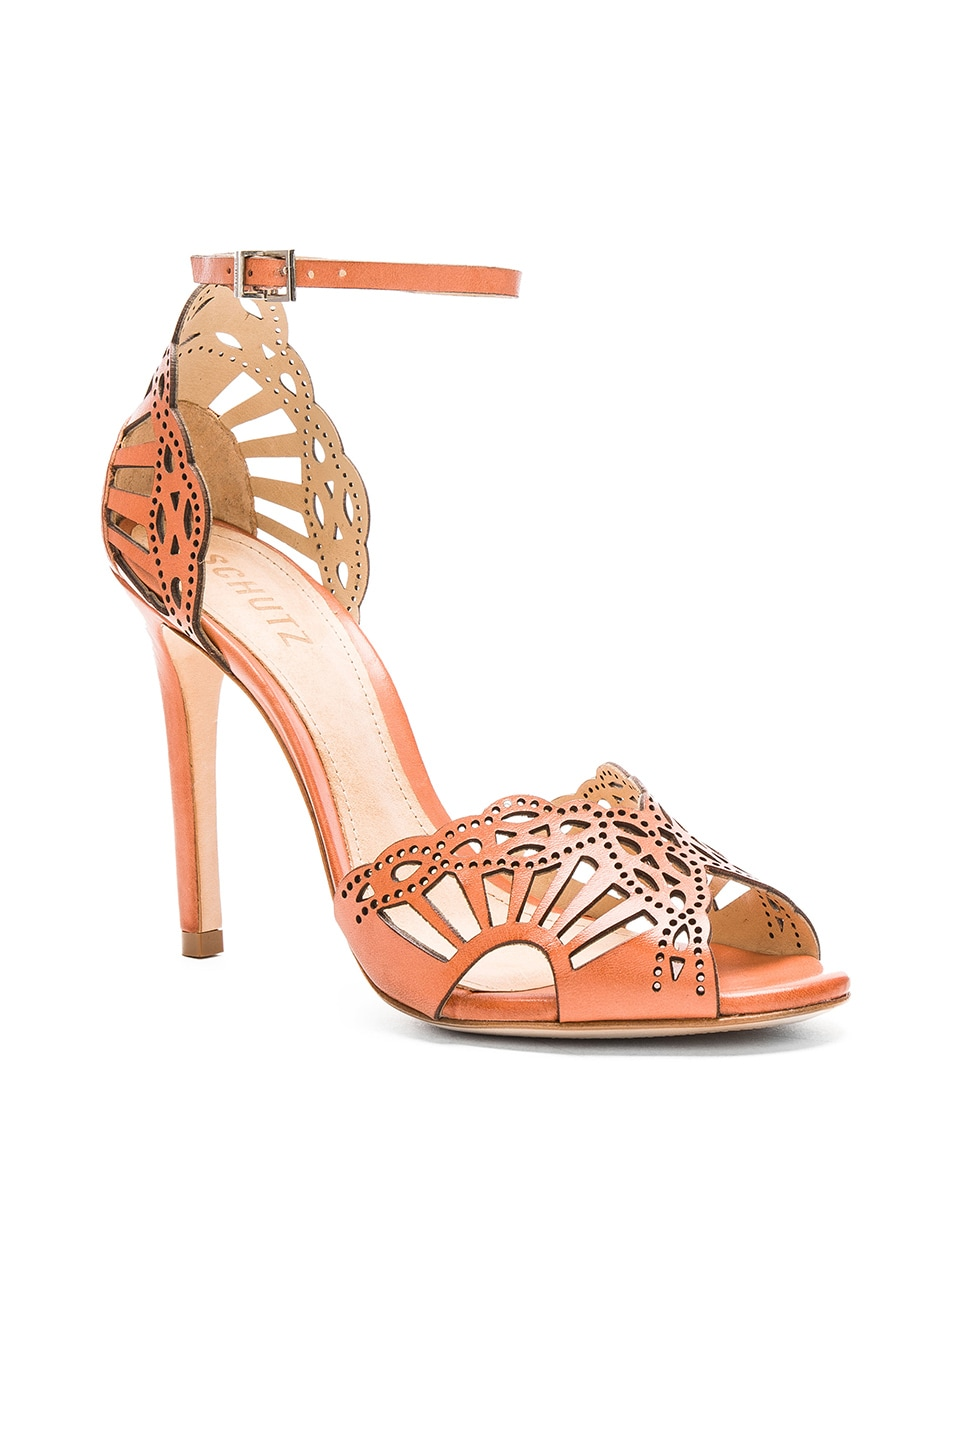 Gorgeous sandal with cut-out detailing